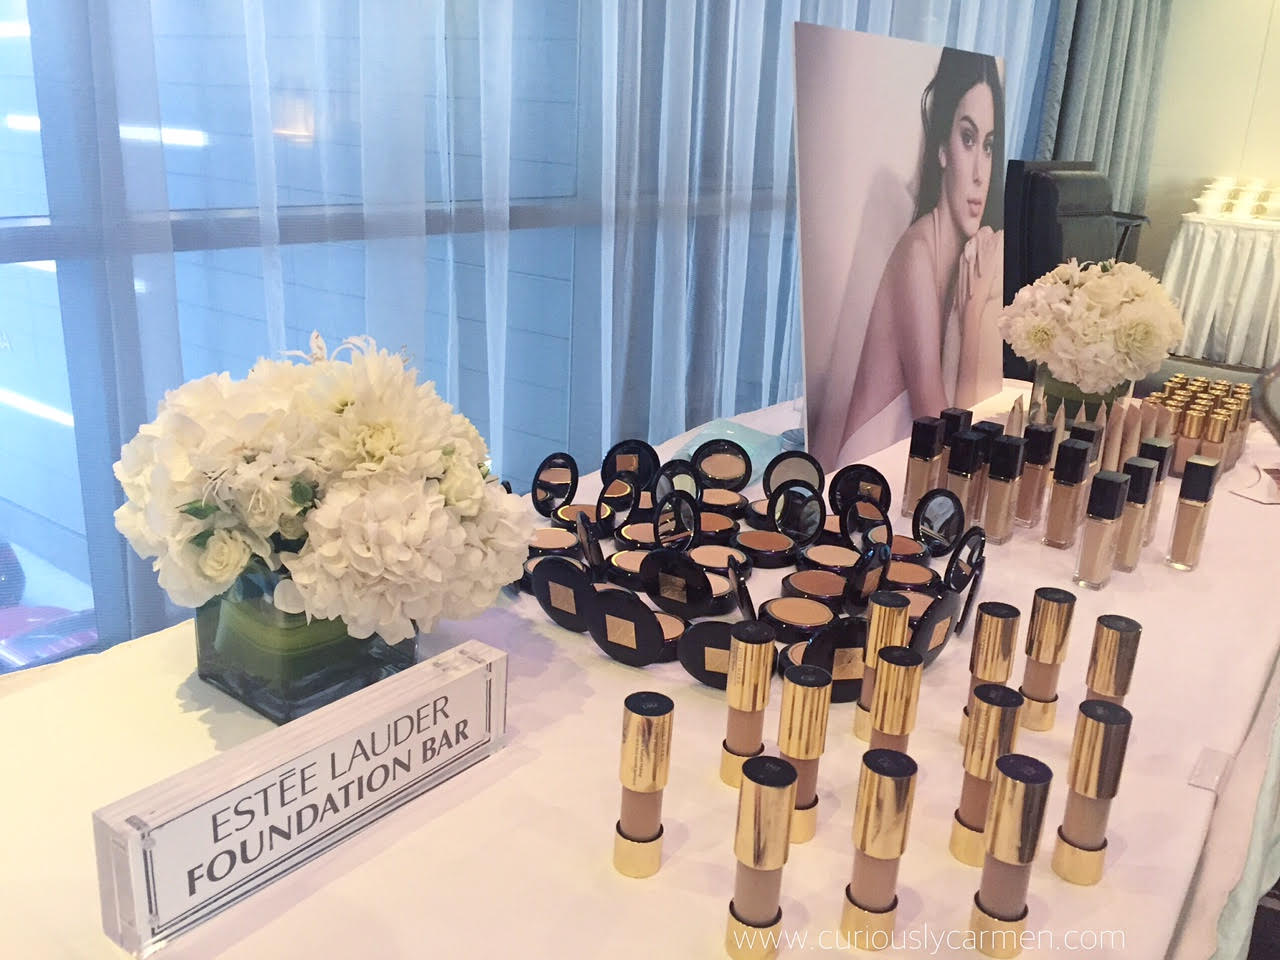 Estee Lauder Foundation